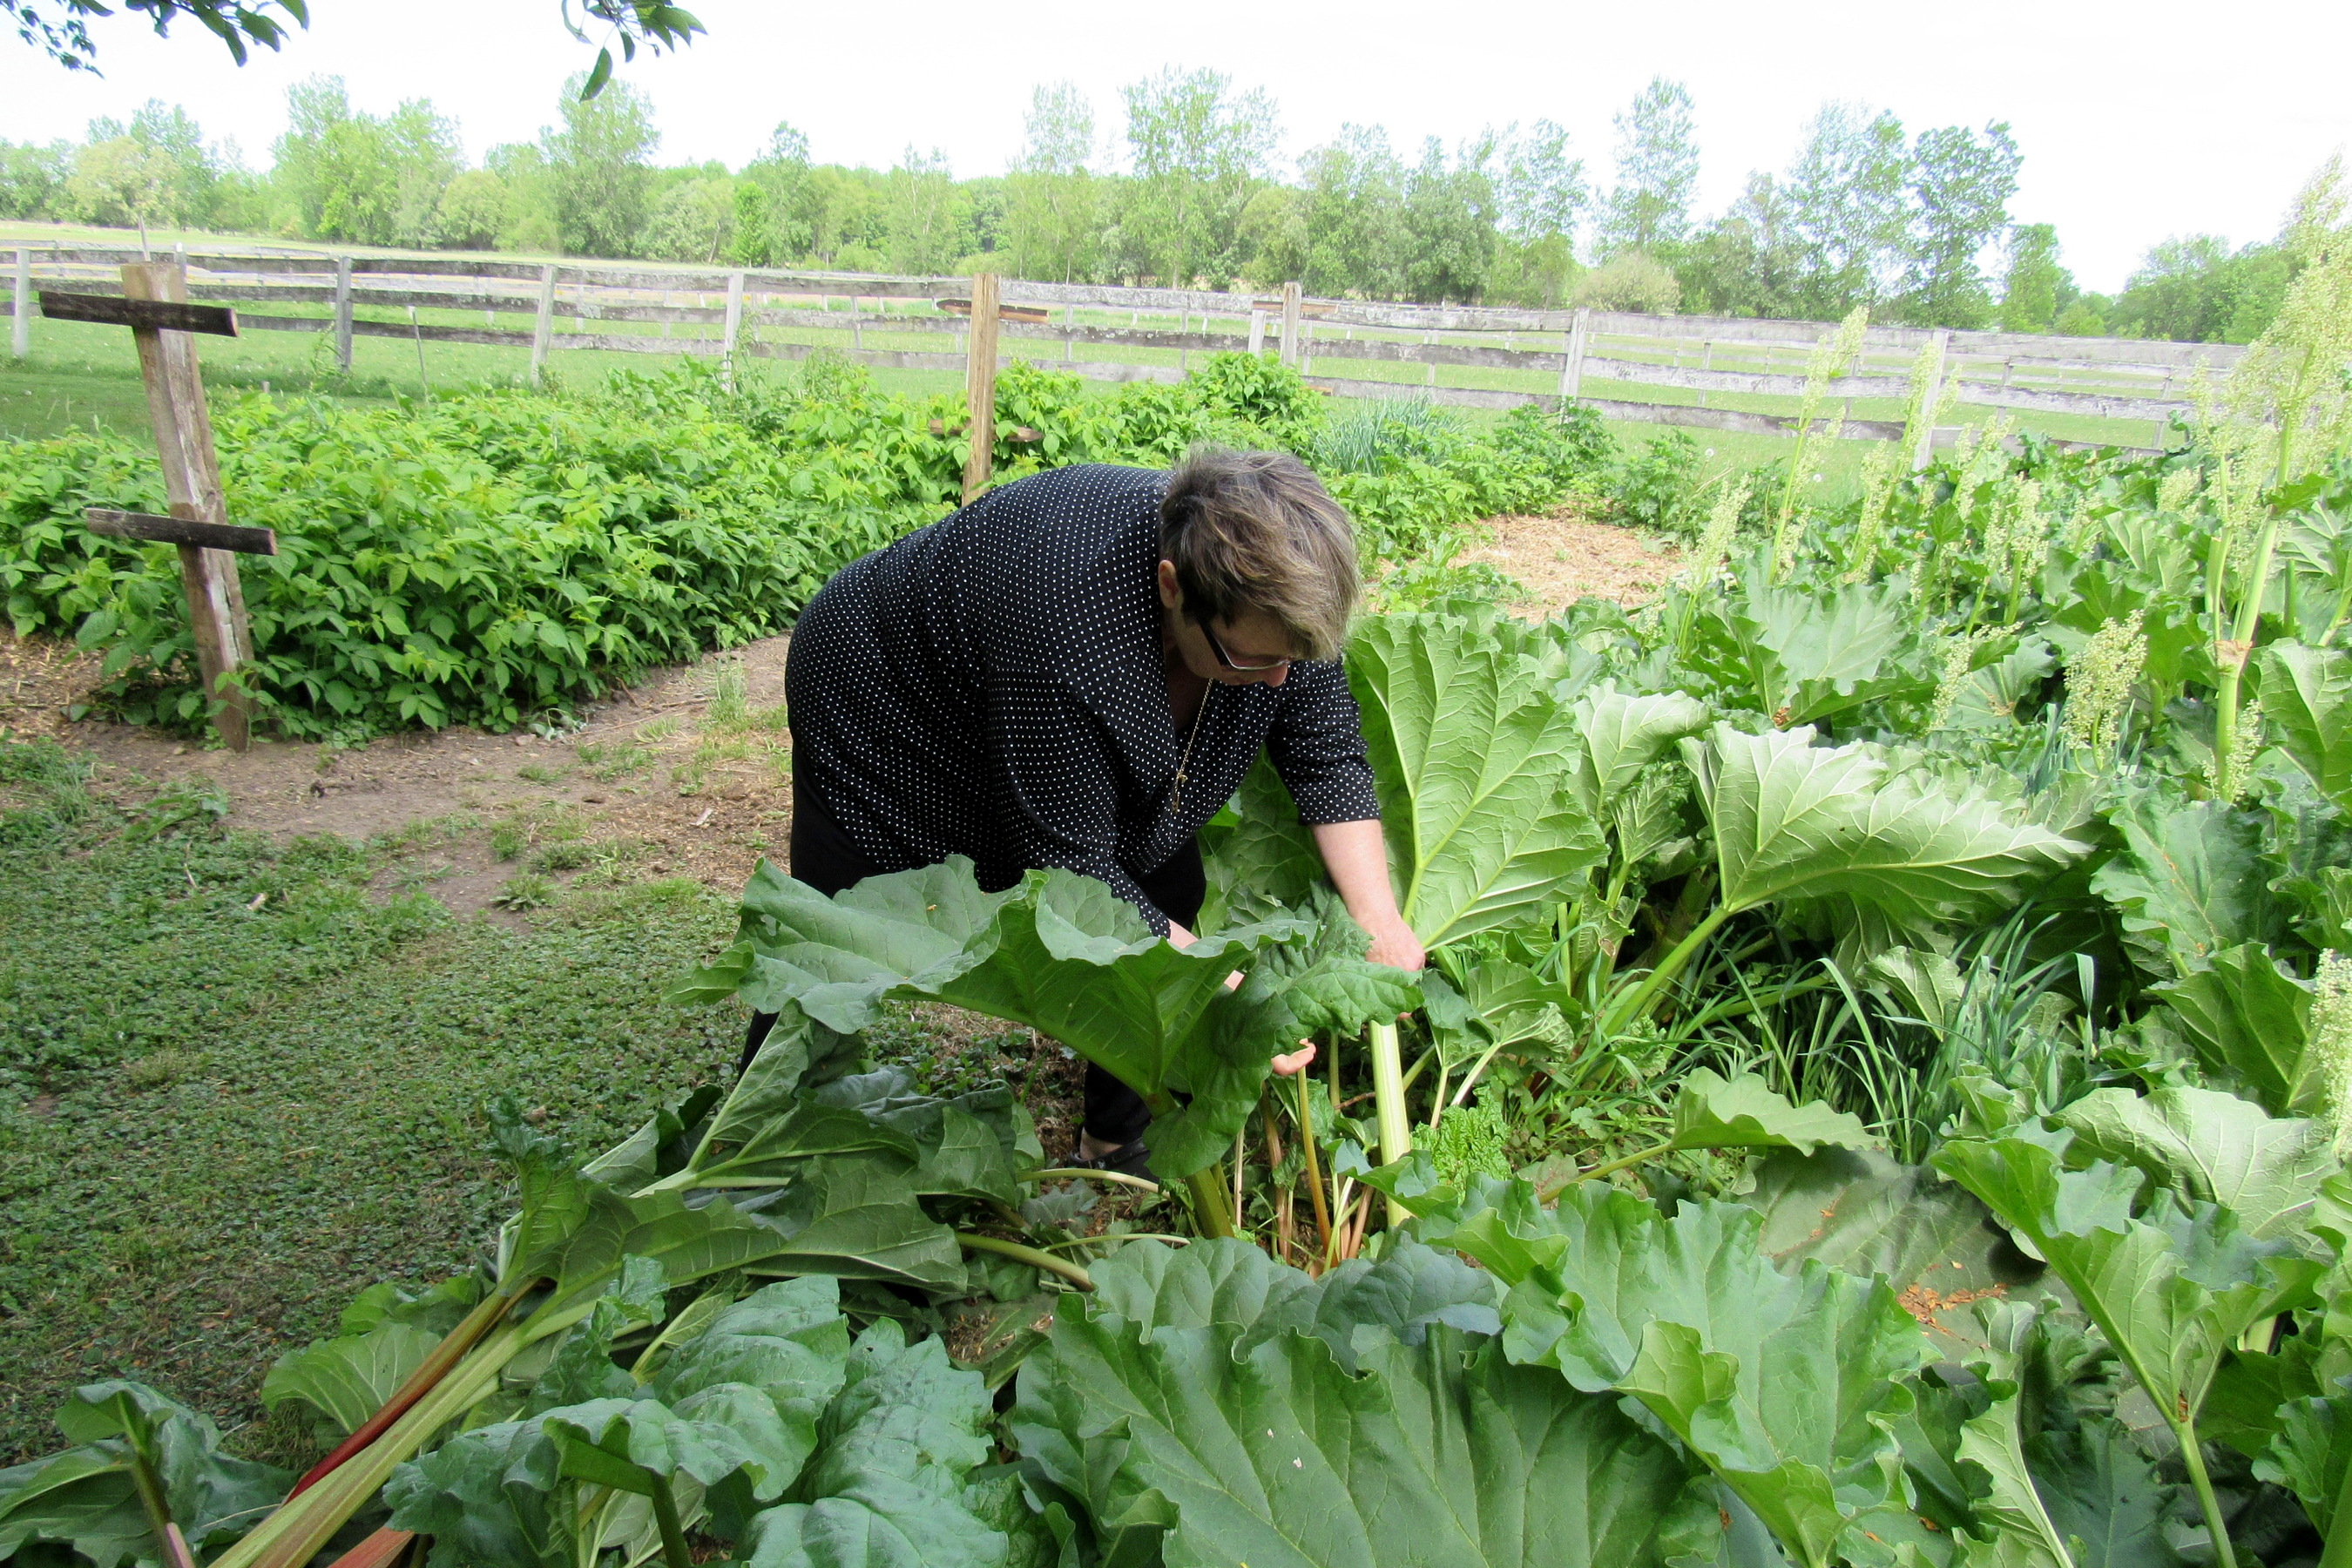 Lori Skoog - local gardener/grower extraordinaire - harvests rhubarb at Skoog Farm in the town of Sweden in a photo taken during the 2015 harvest.  Lori makes scrumptious pies with her lovely tart leaf stalks. K. Gabalski photo